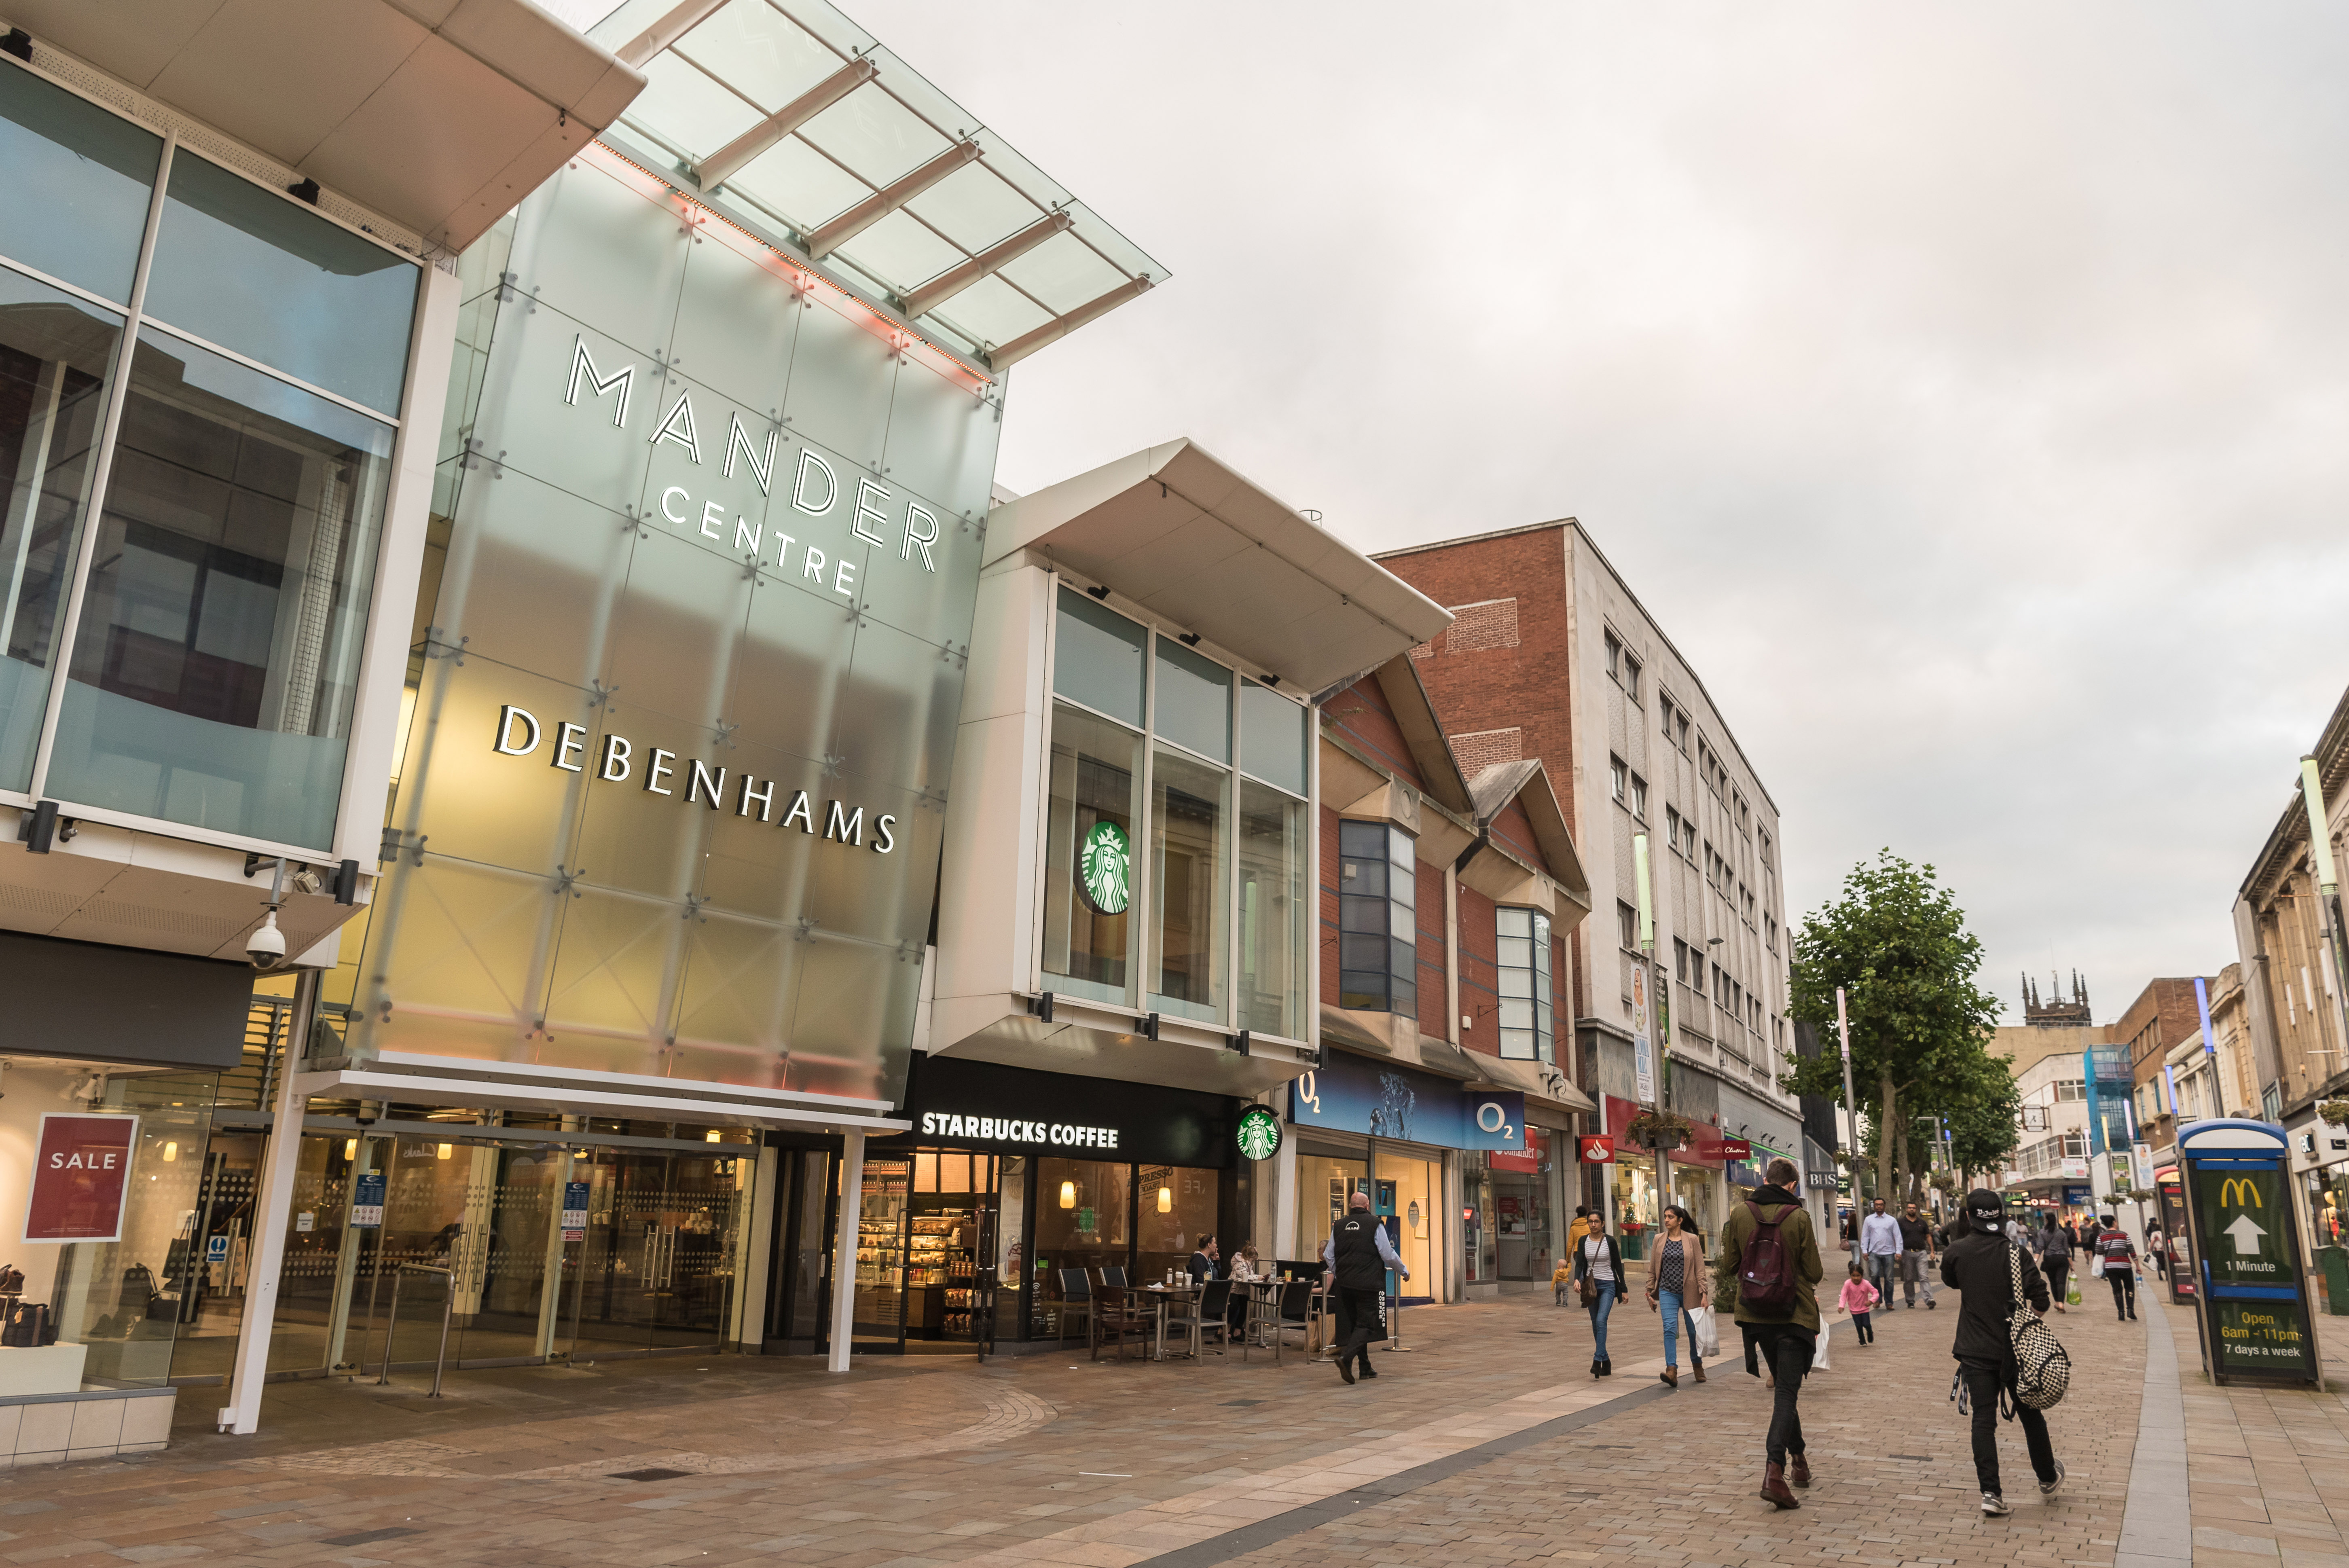 Mander Centre signs four major national brands, leasing over 100,000 sq ft